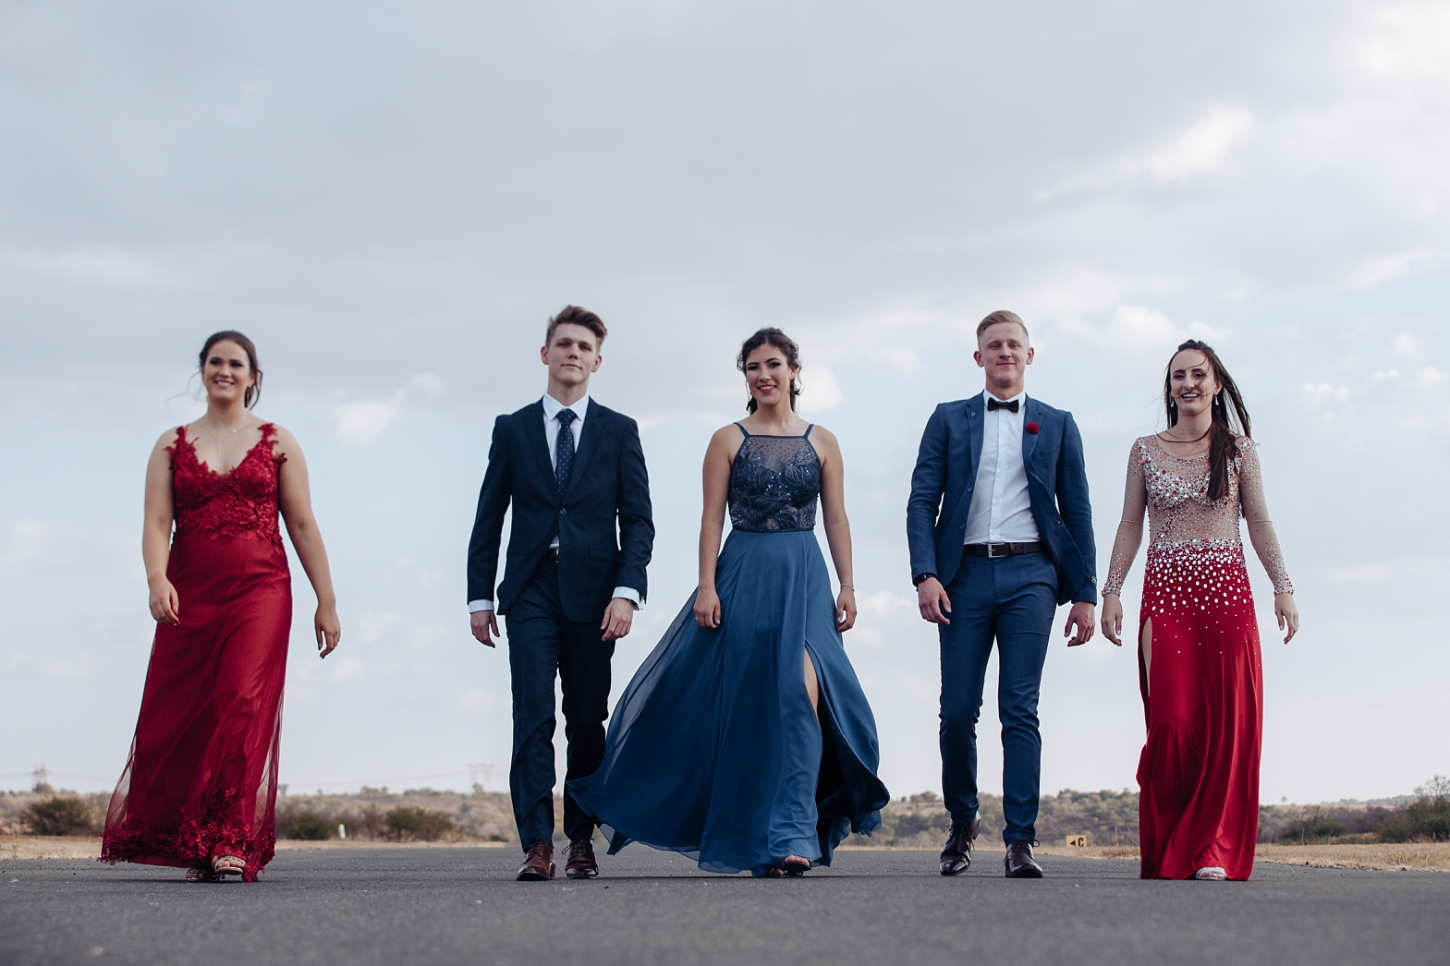 Anrize's Waterkloof Matric Farewell